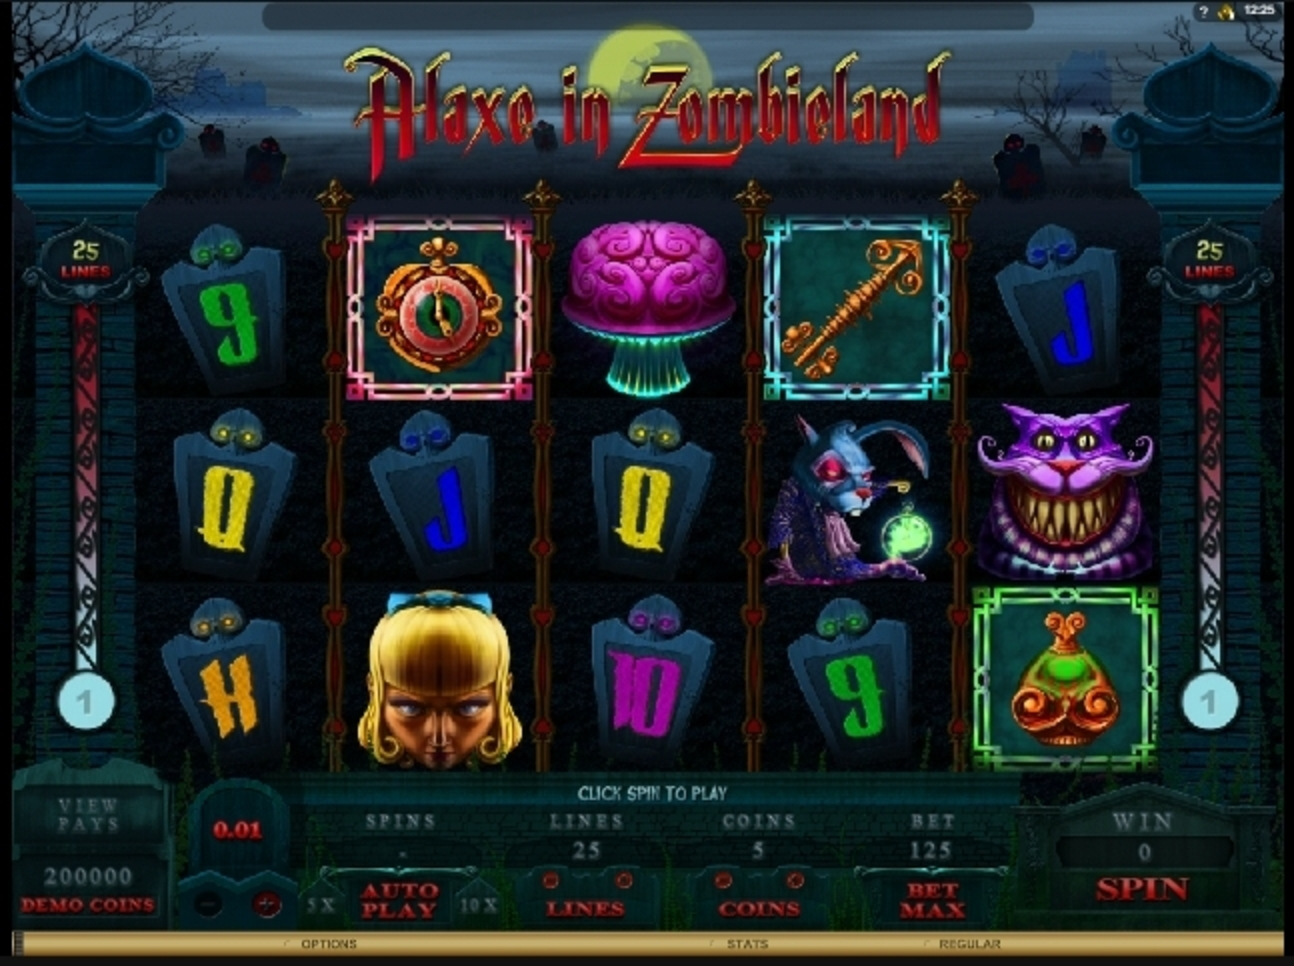 Reels in Alaxe in Zombieland Slot Game by Microgaming